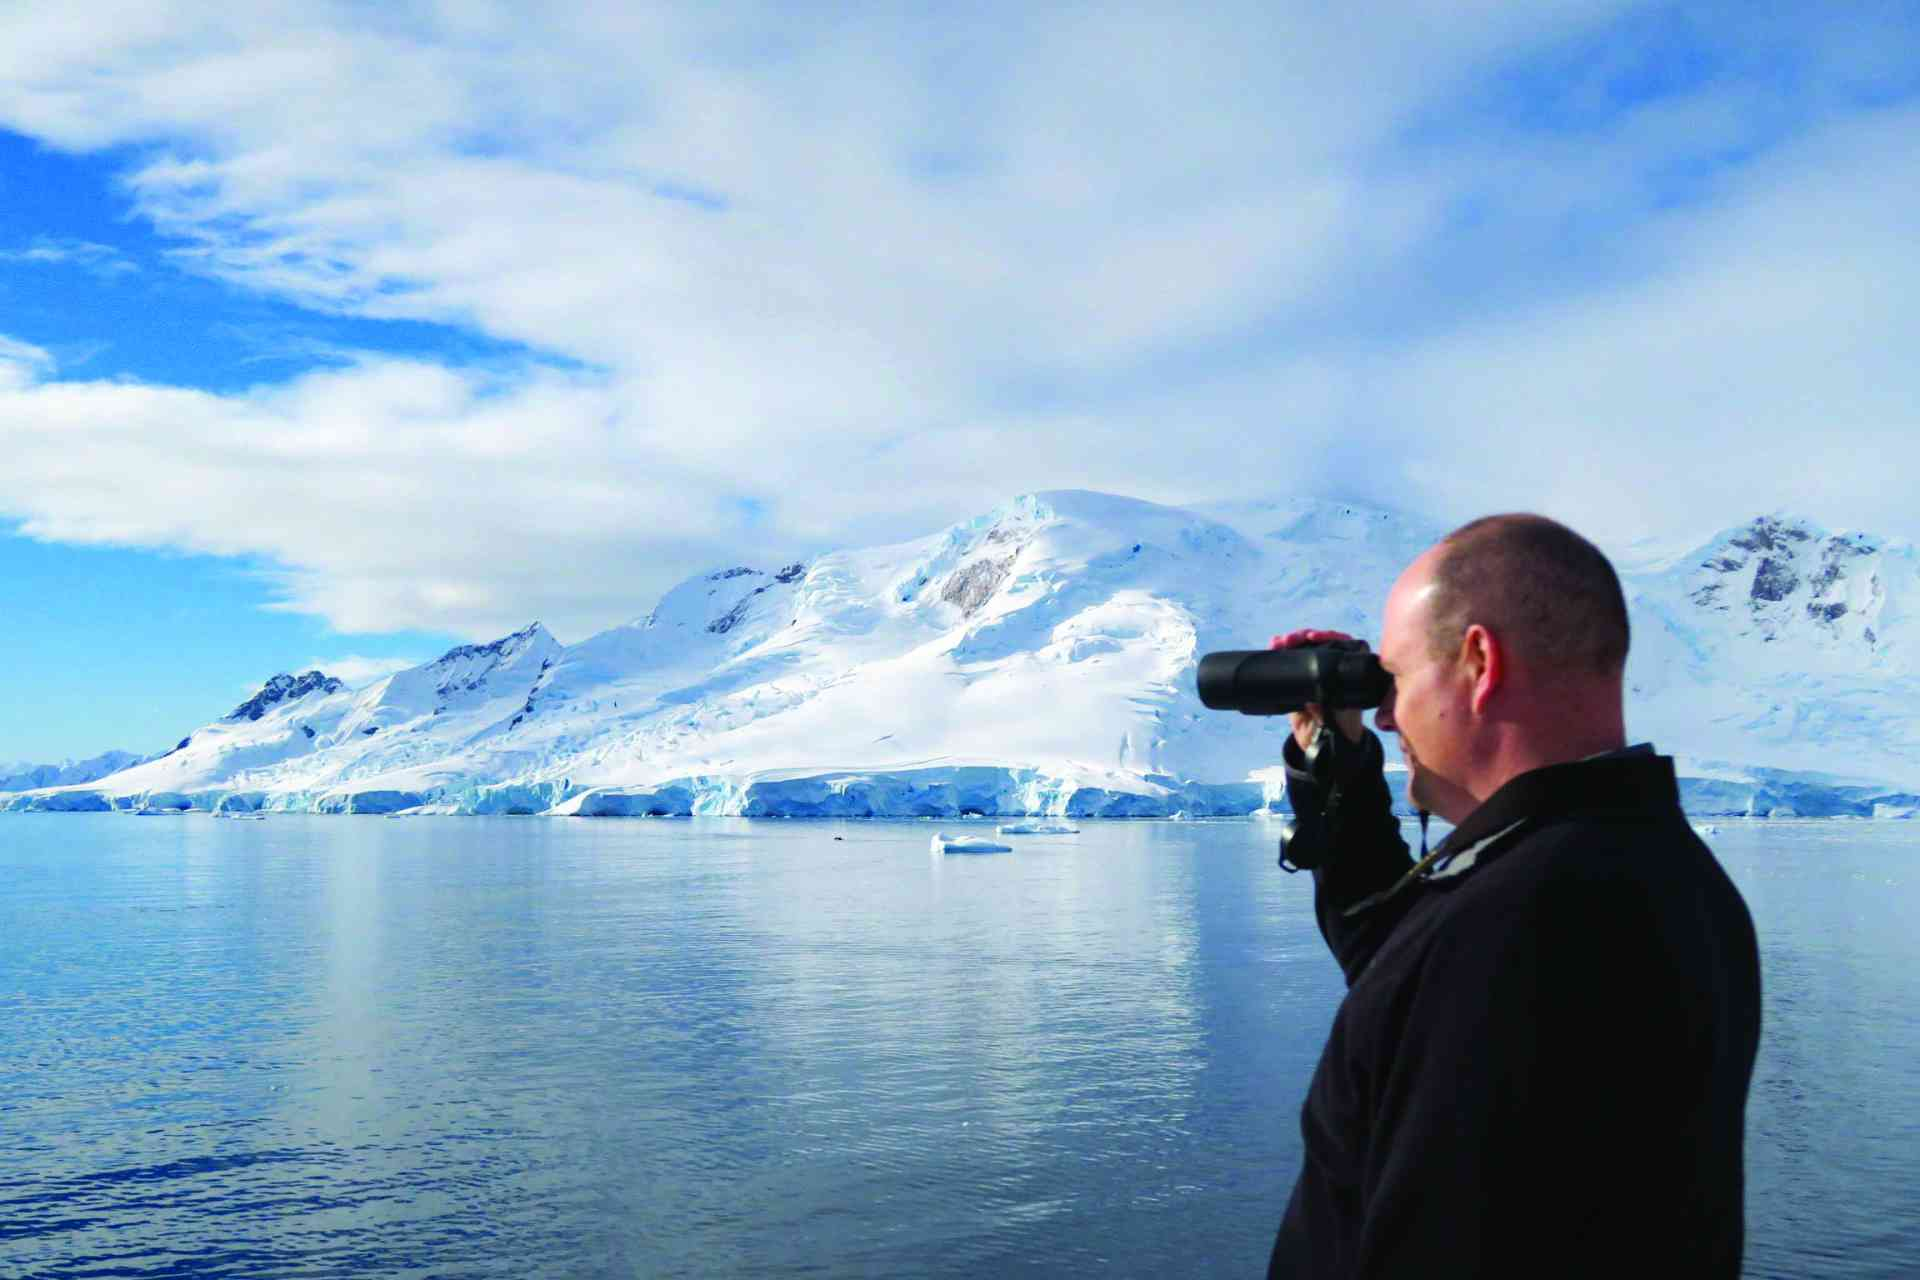 Sacha Bunnik surveying the impressive Antarctic scenery by Amie Bunnik